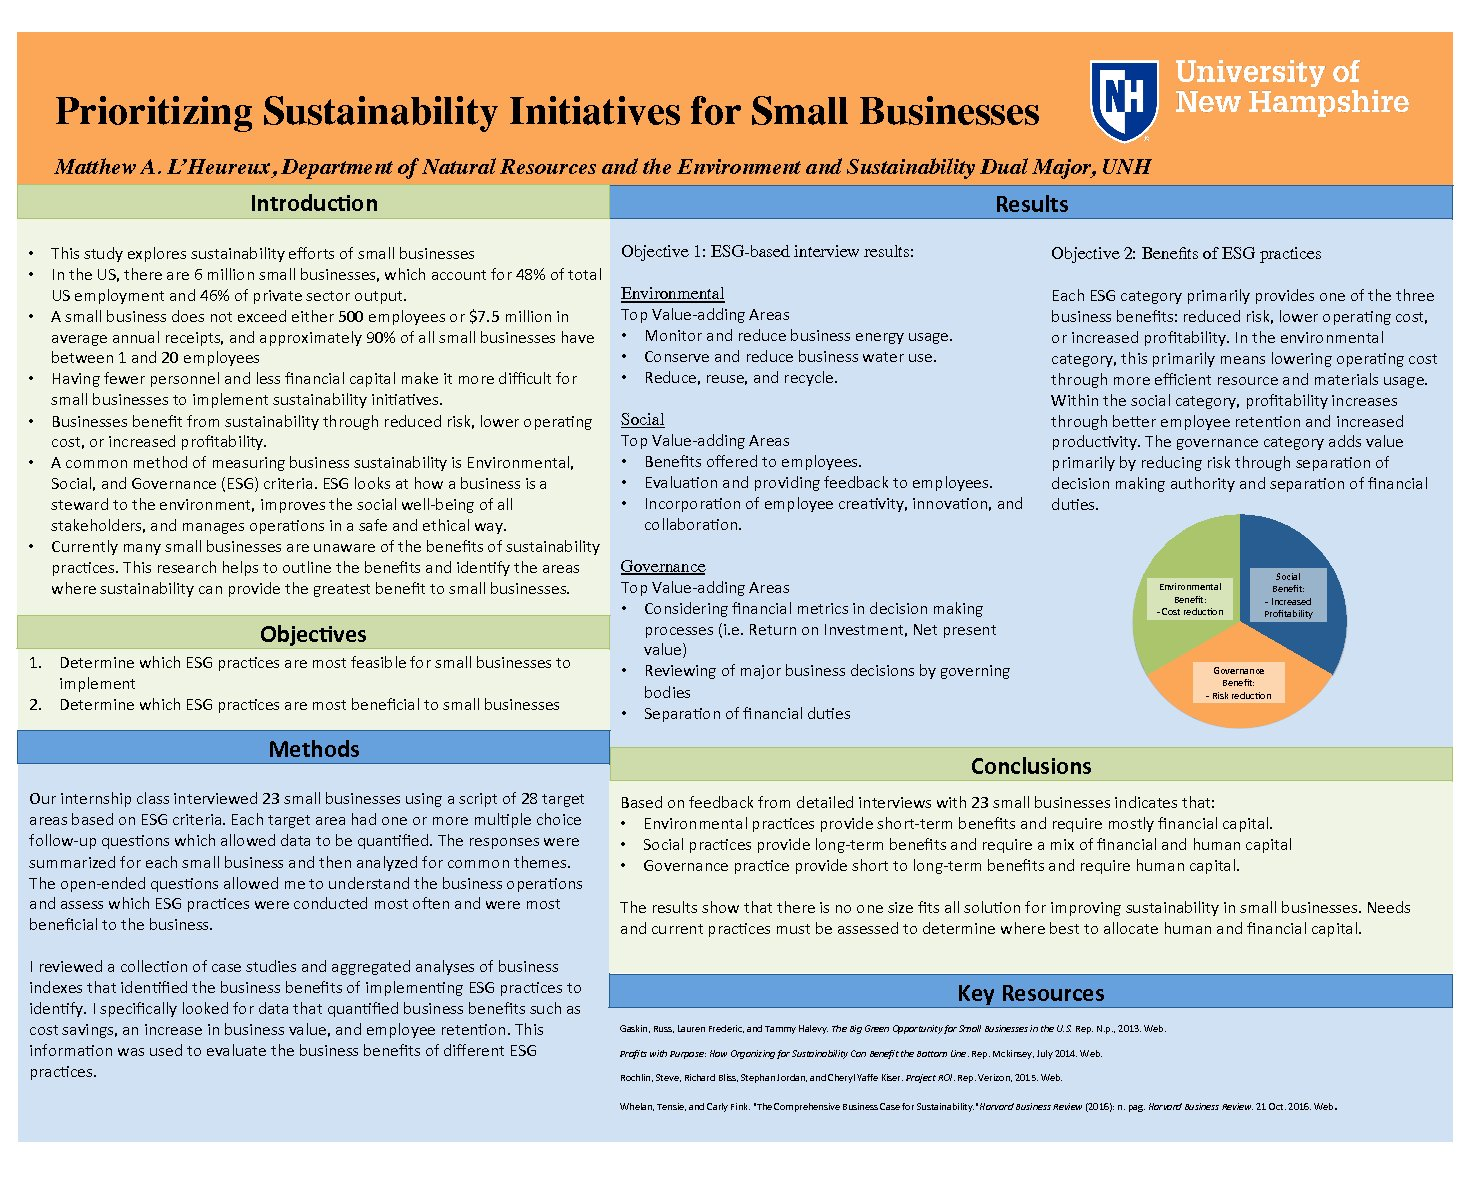 Prioritizing Sustainability Initiatives For Small Businesses by mal12